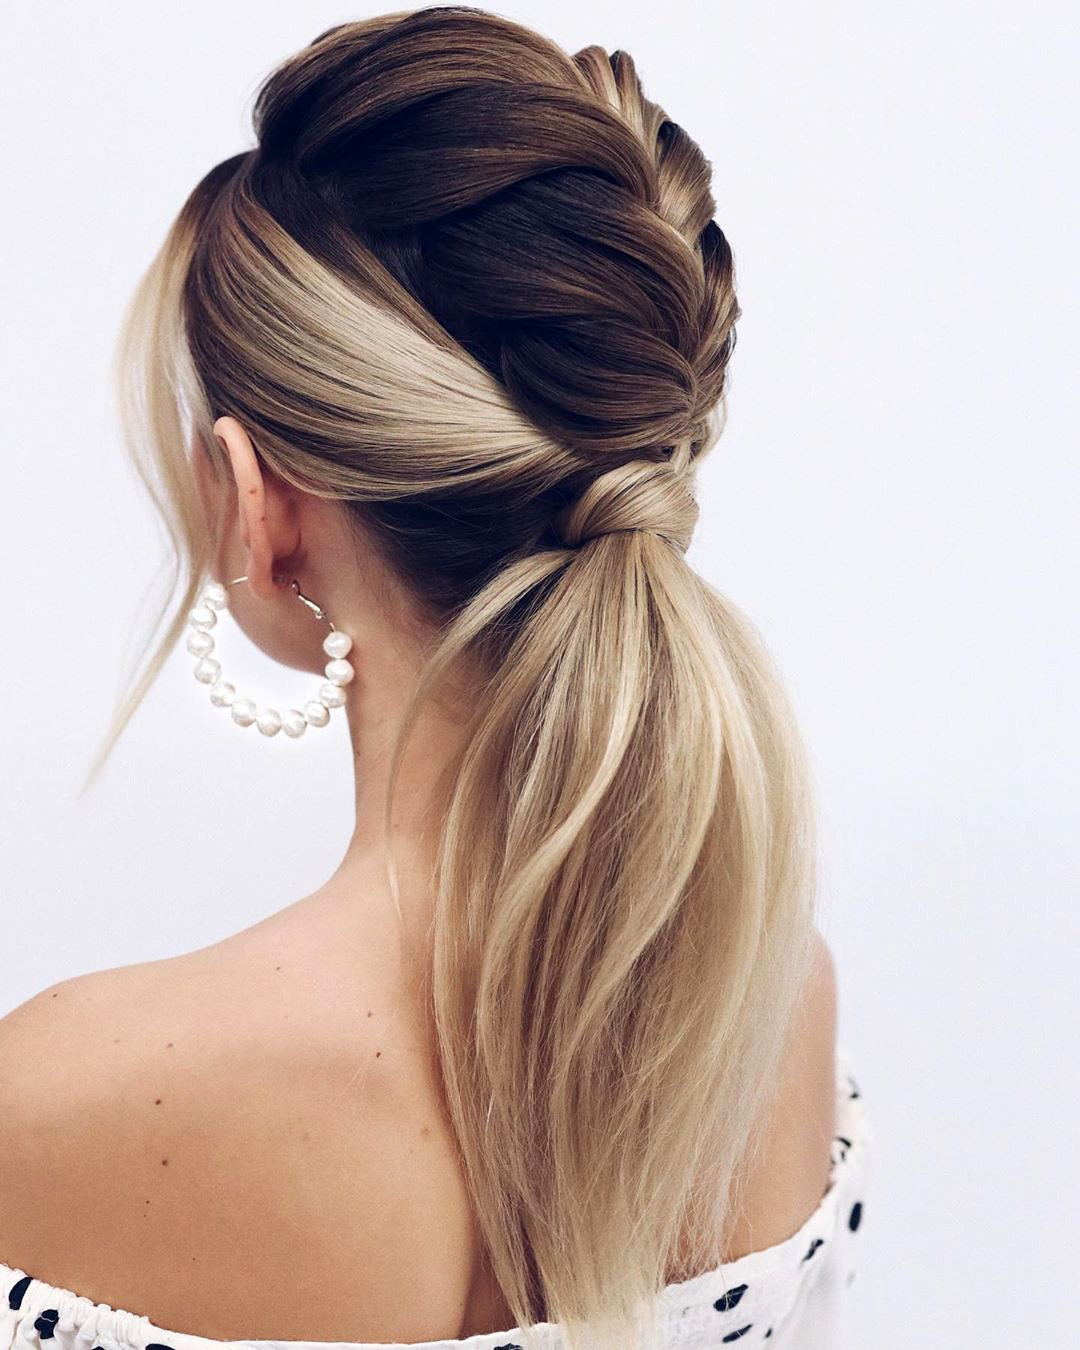 pony tail hairstyles braided ombre on long hair bride tonyastylist